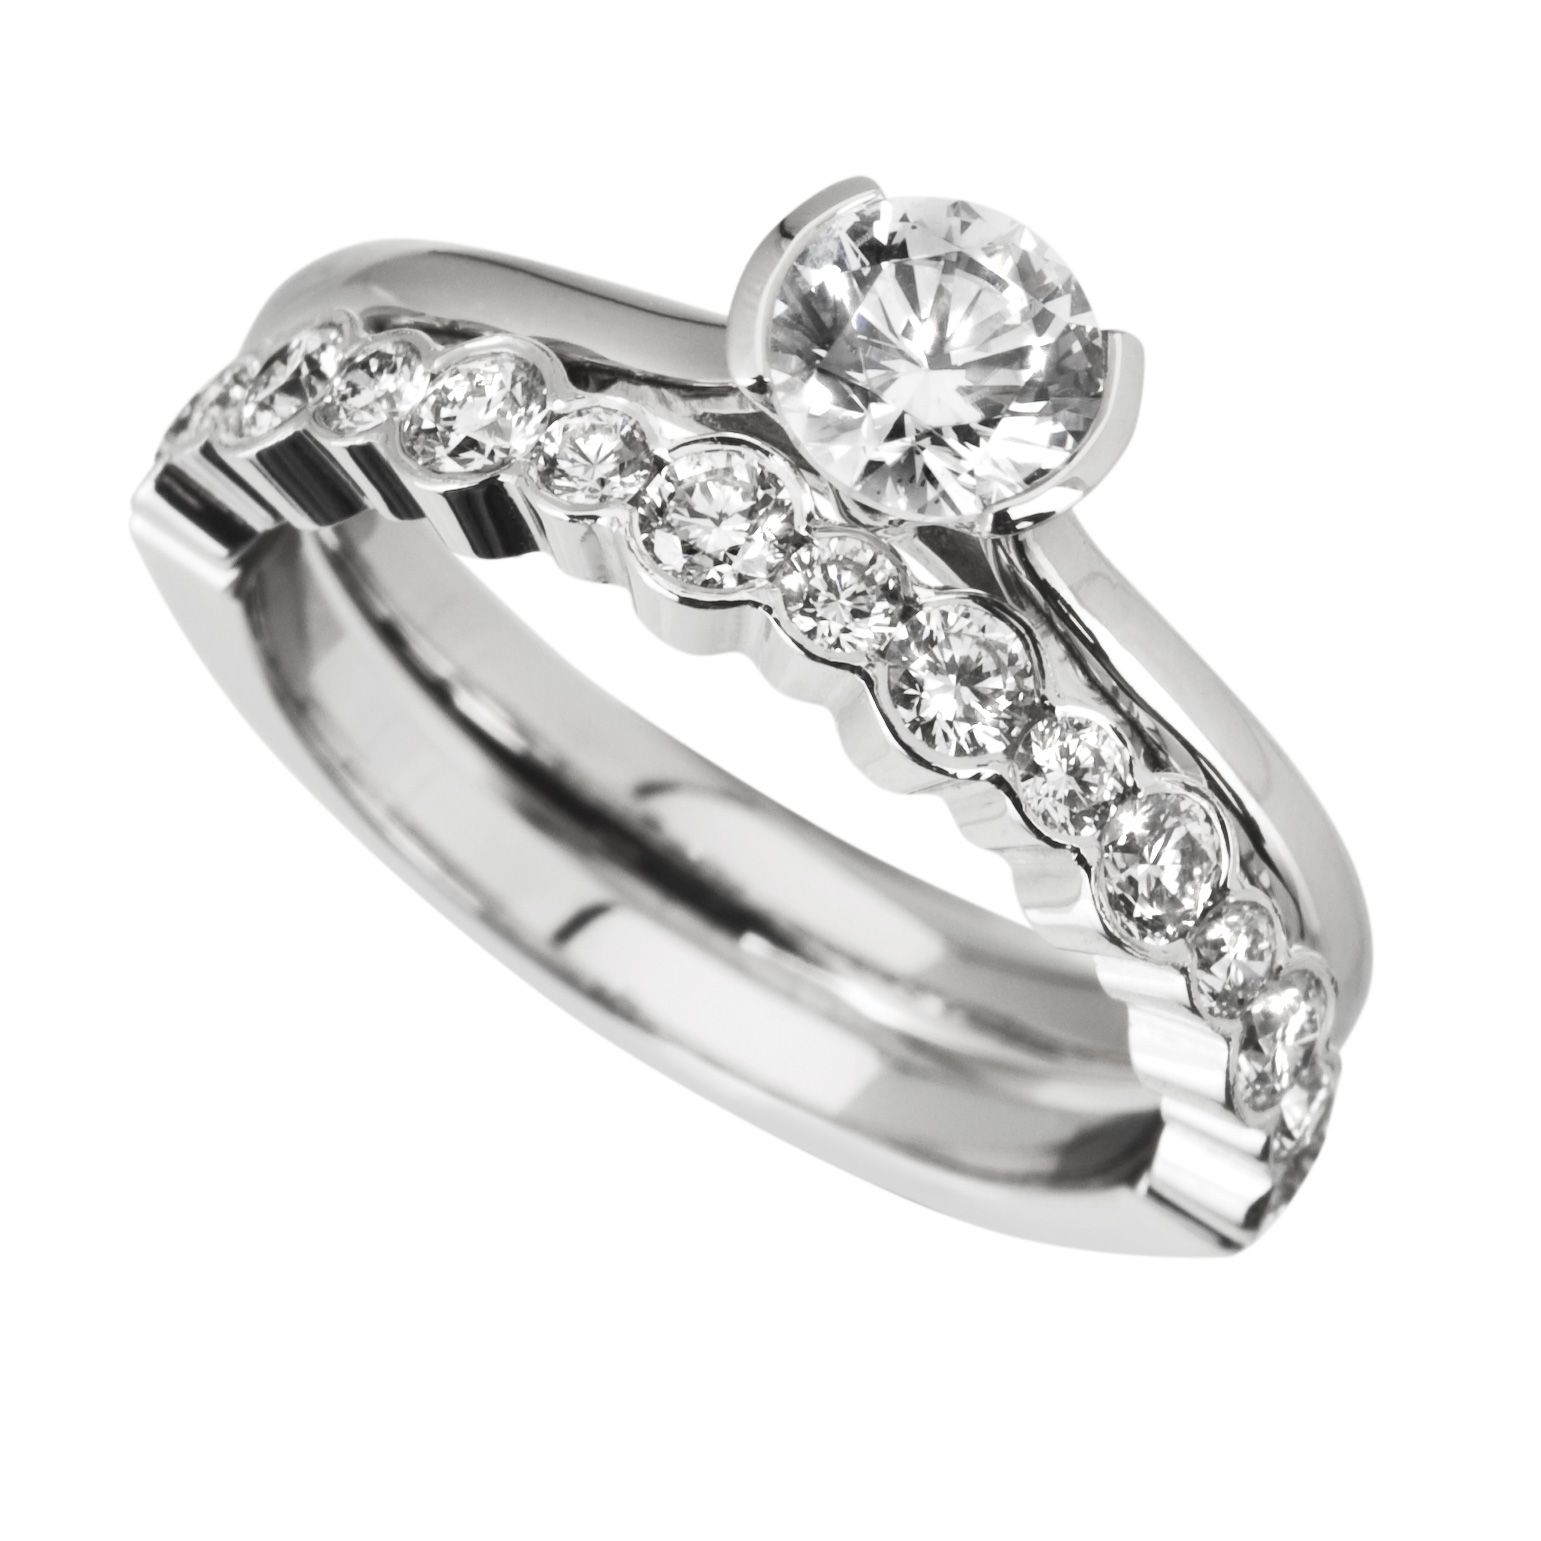 images of wedding rings sets rub over engagement ring with matching diamond - Wedding And Engagement Rings